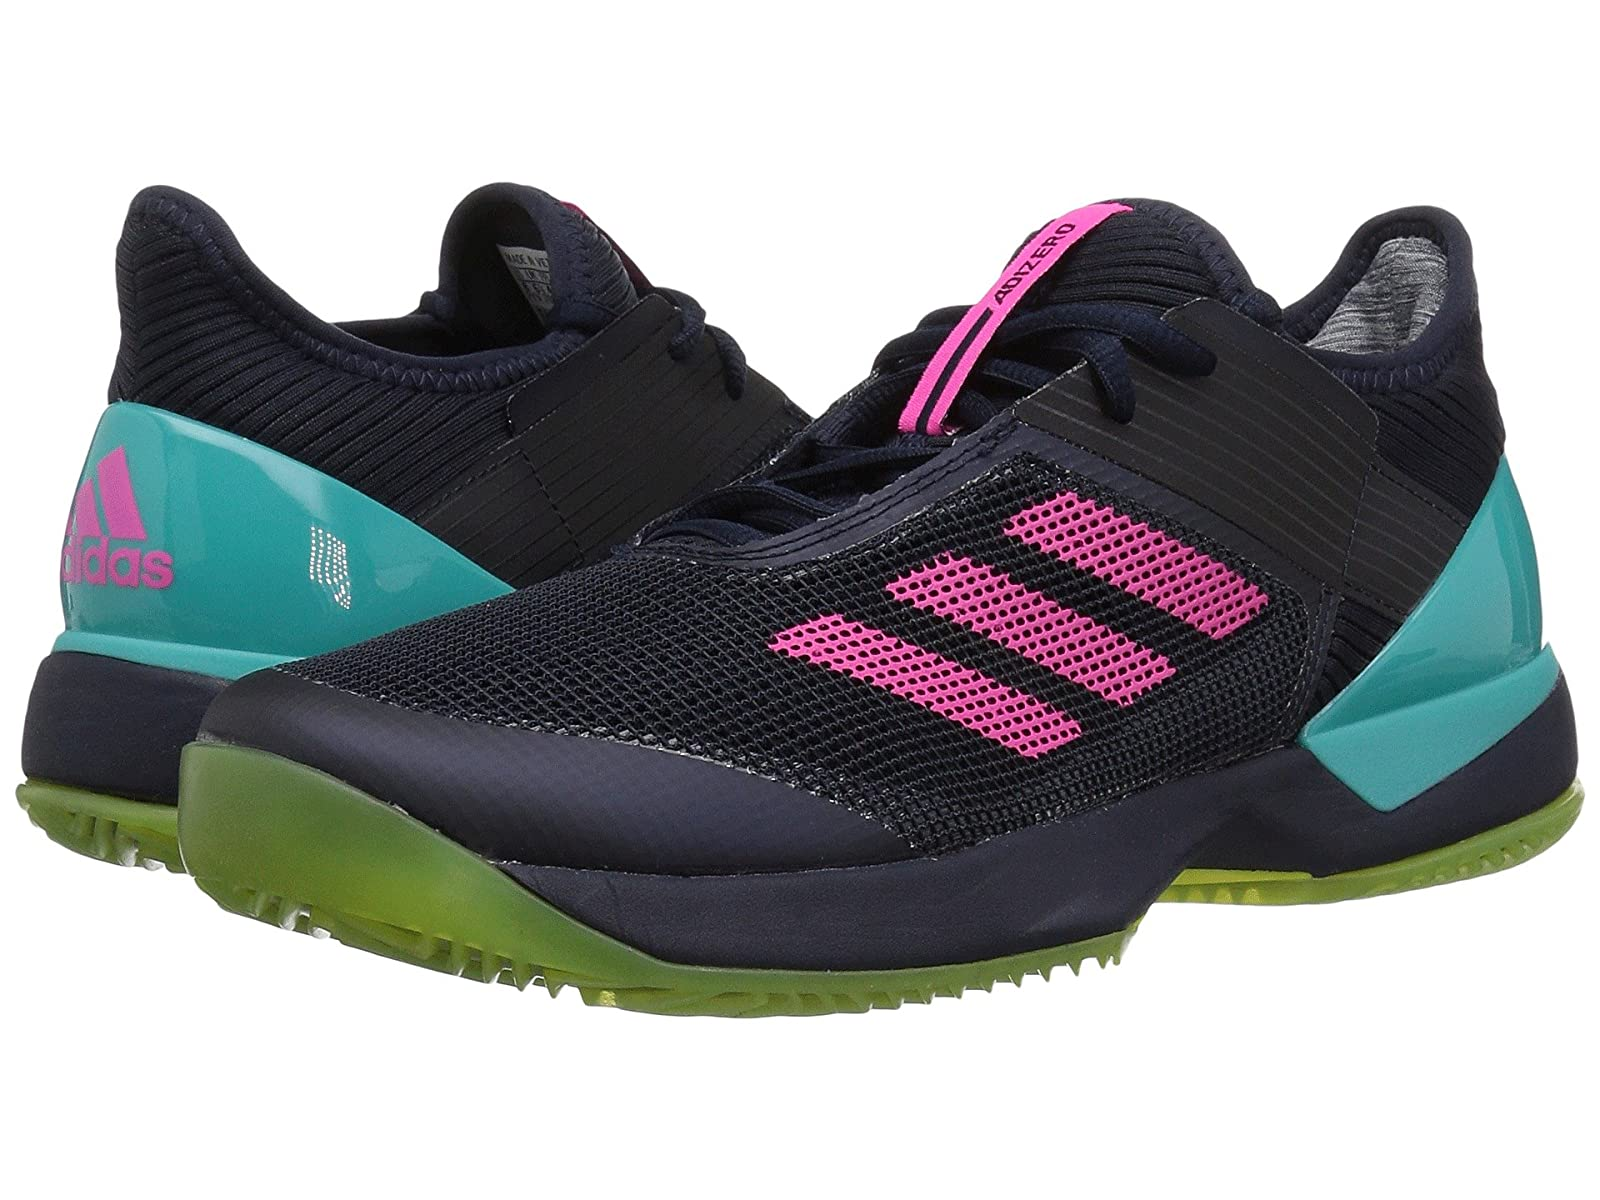 adidas Adizero Ubersonic 3 W ClayAtmospheric grades have affordable shoes